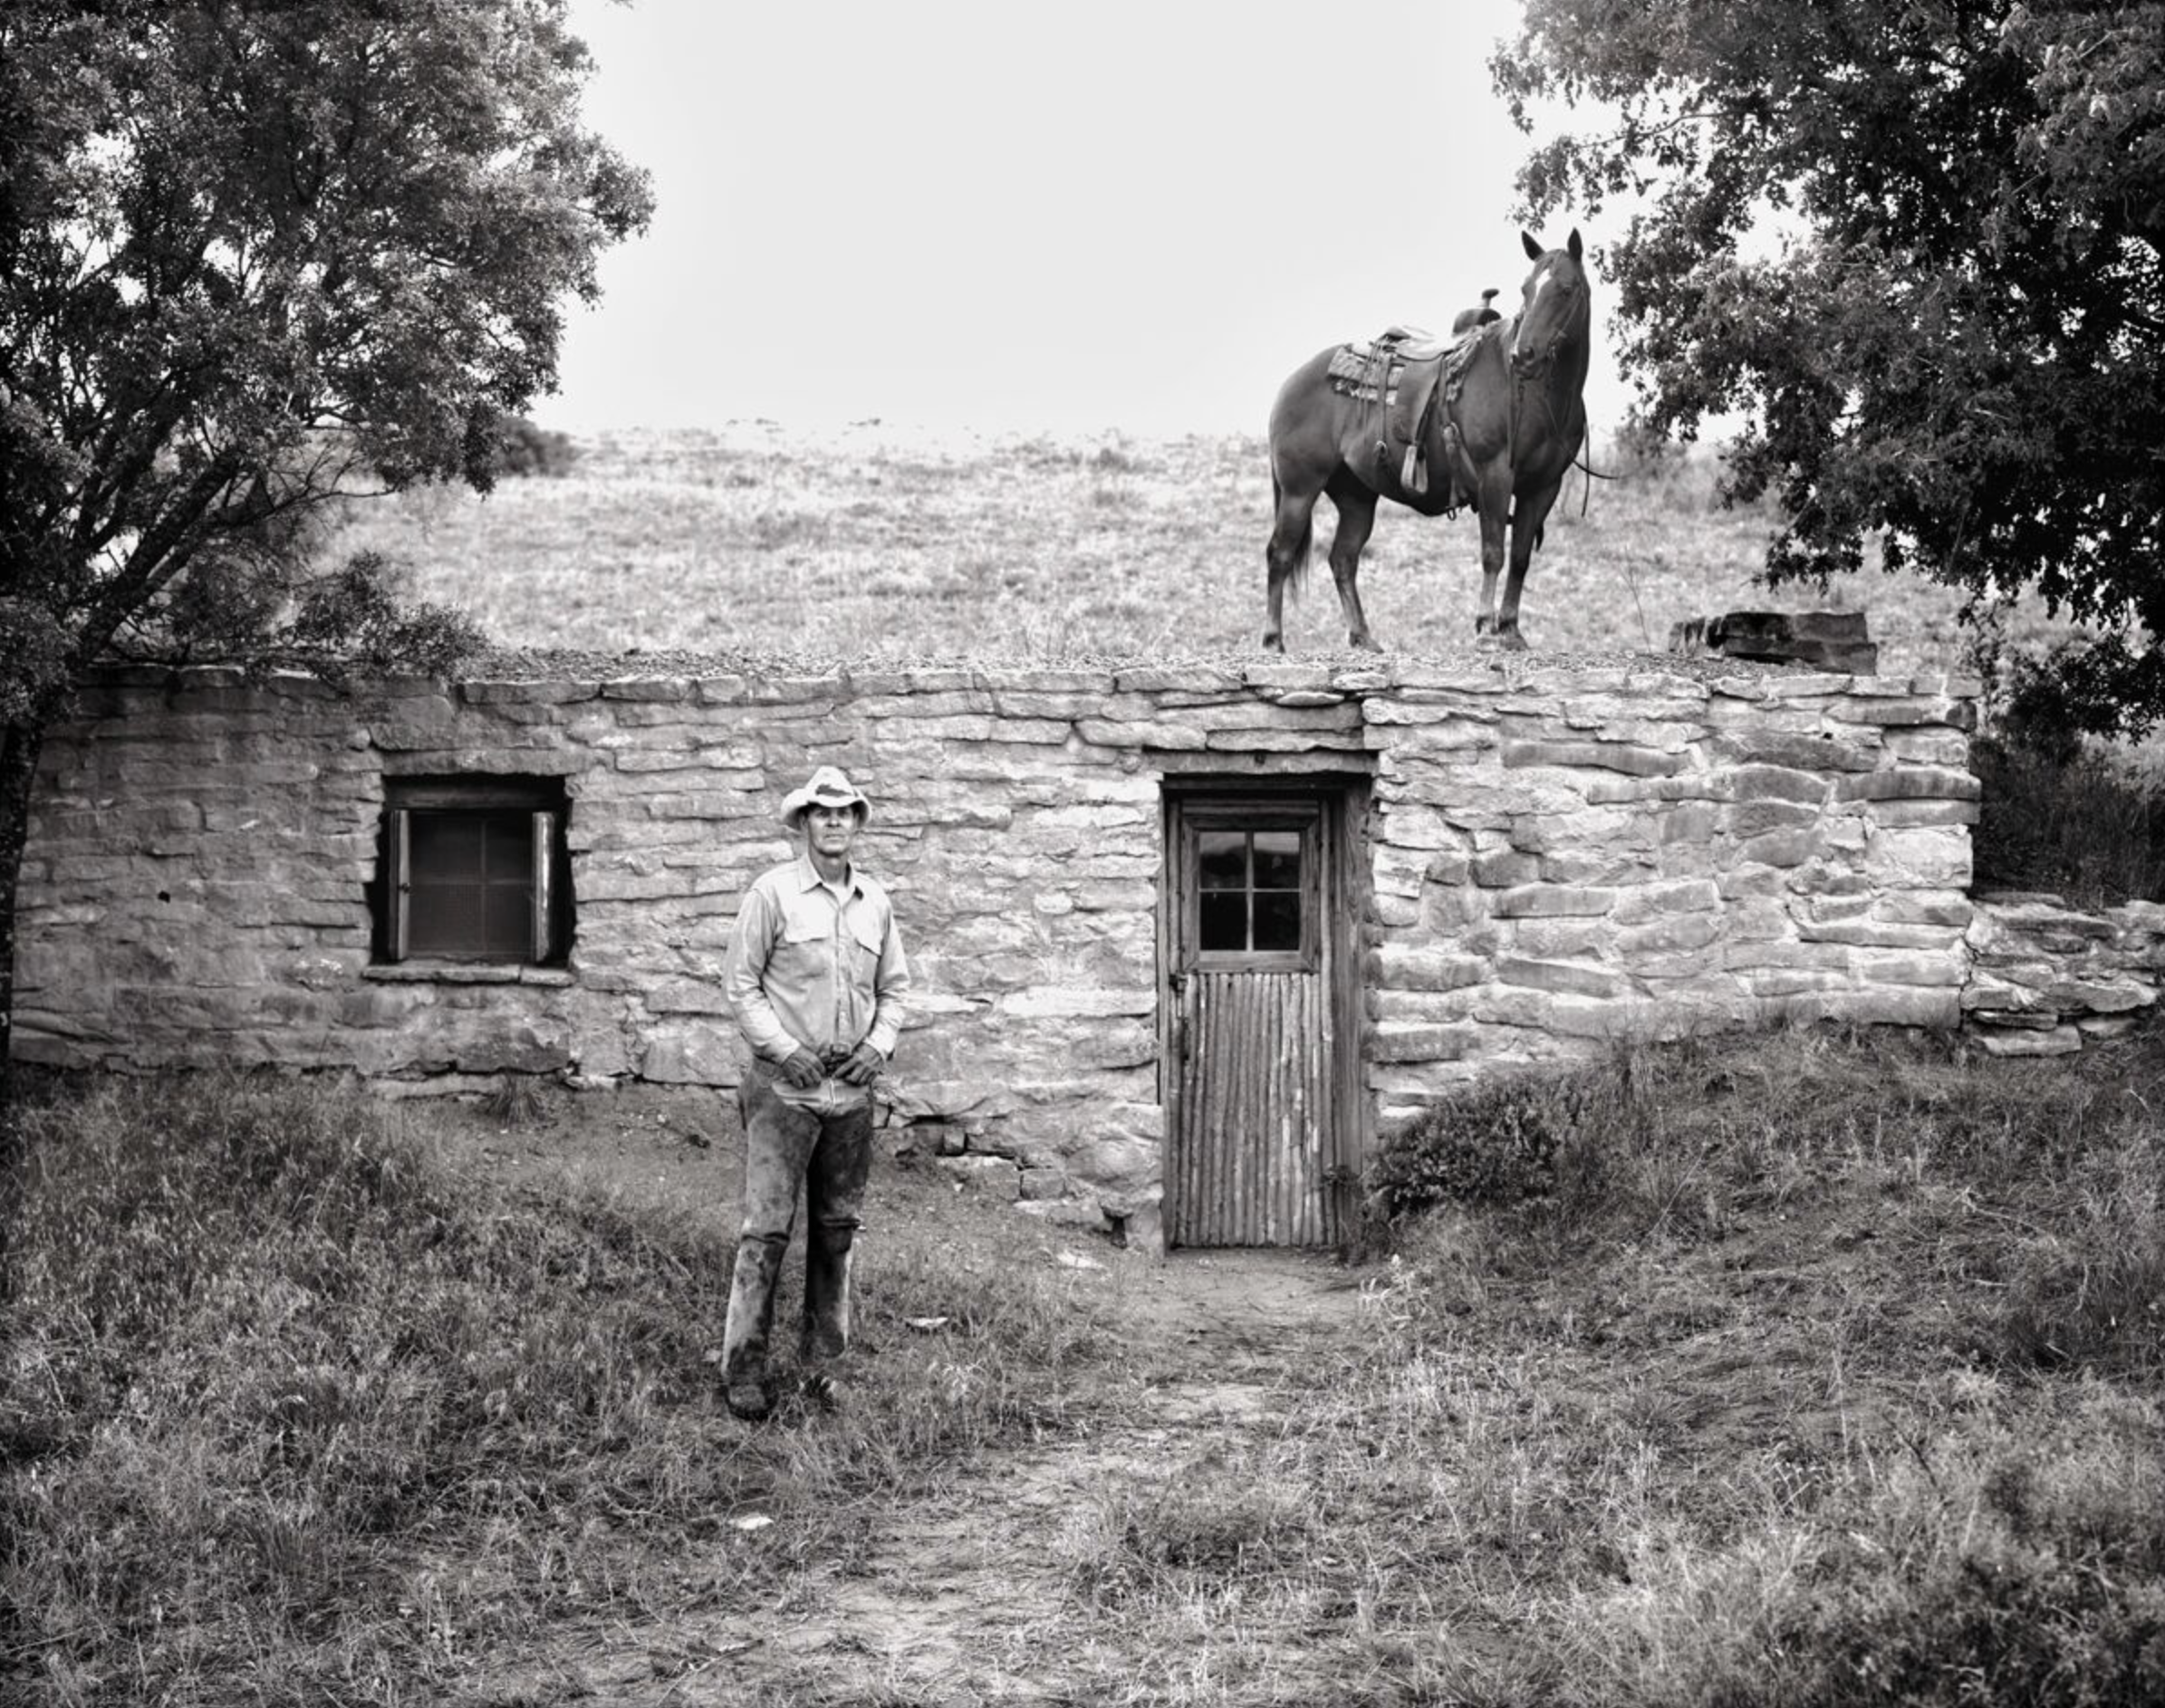 Frank Perry at Dugout House, Lambshead Ranch, Albany, Texas, 1988